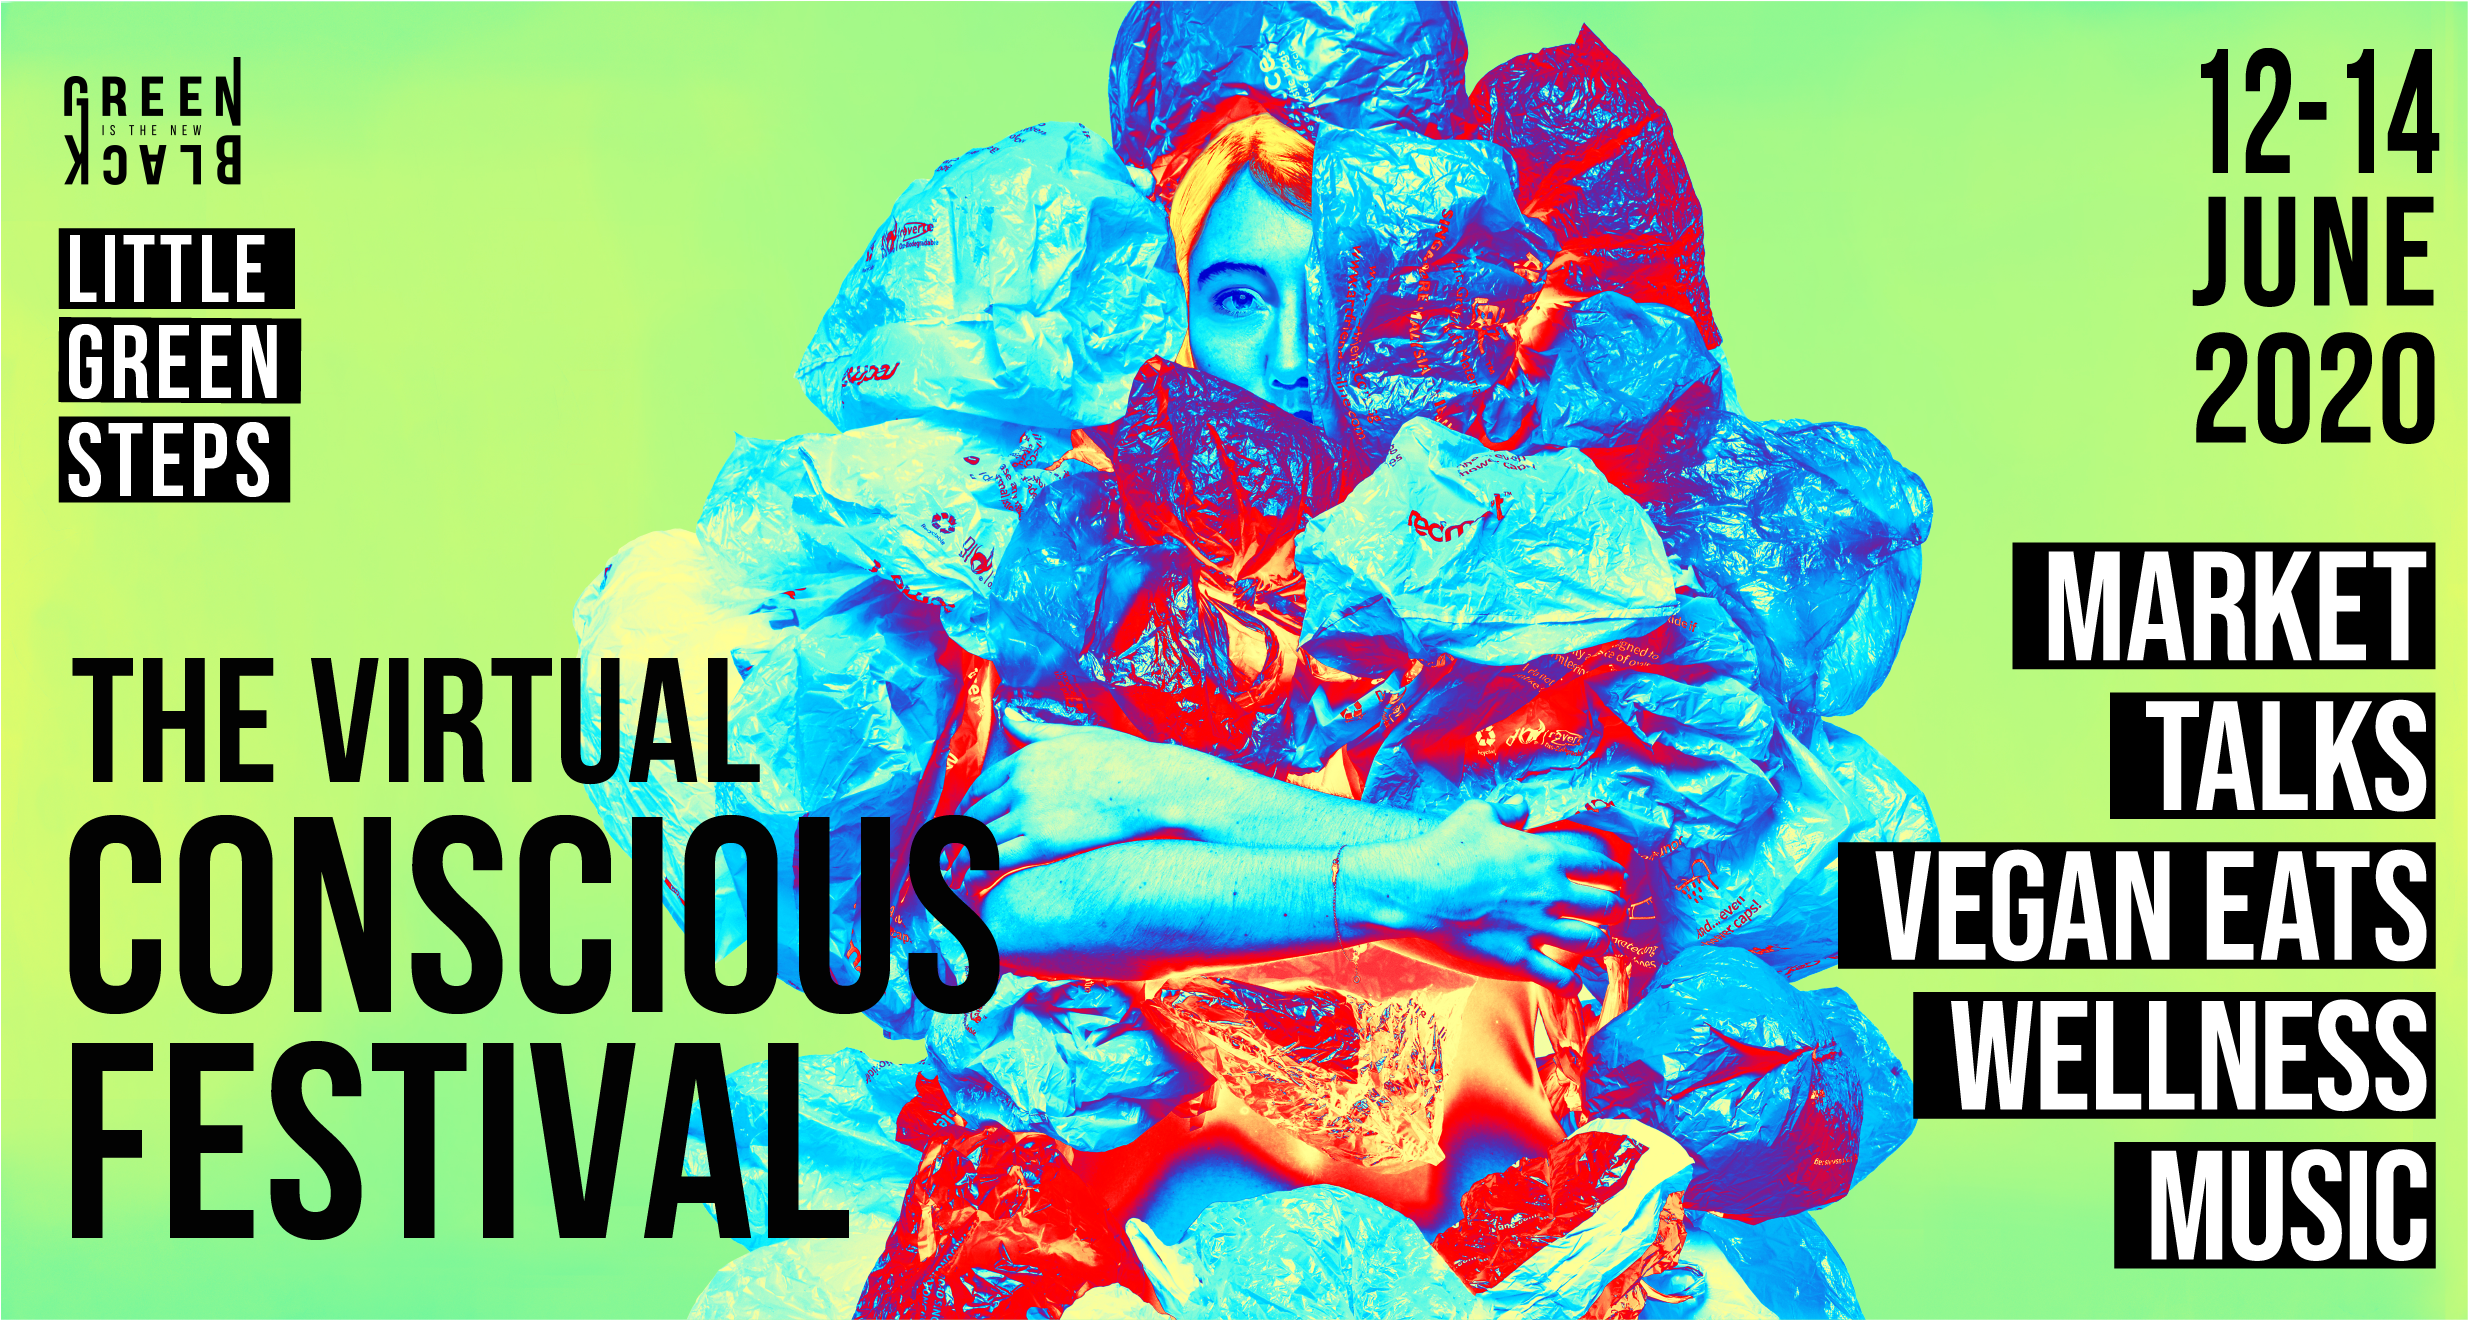 Virtual Conscious Festival by Green Is The New Black